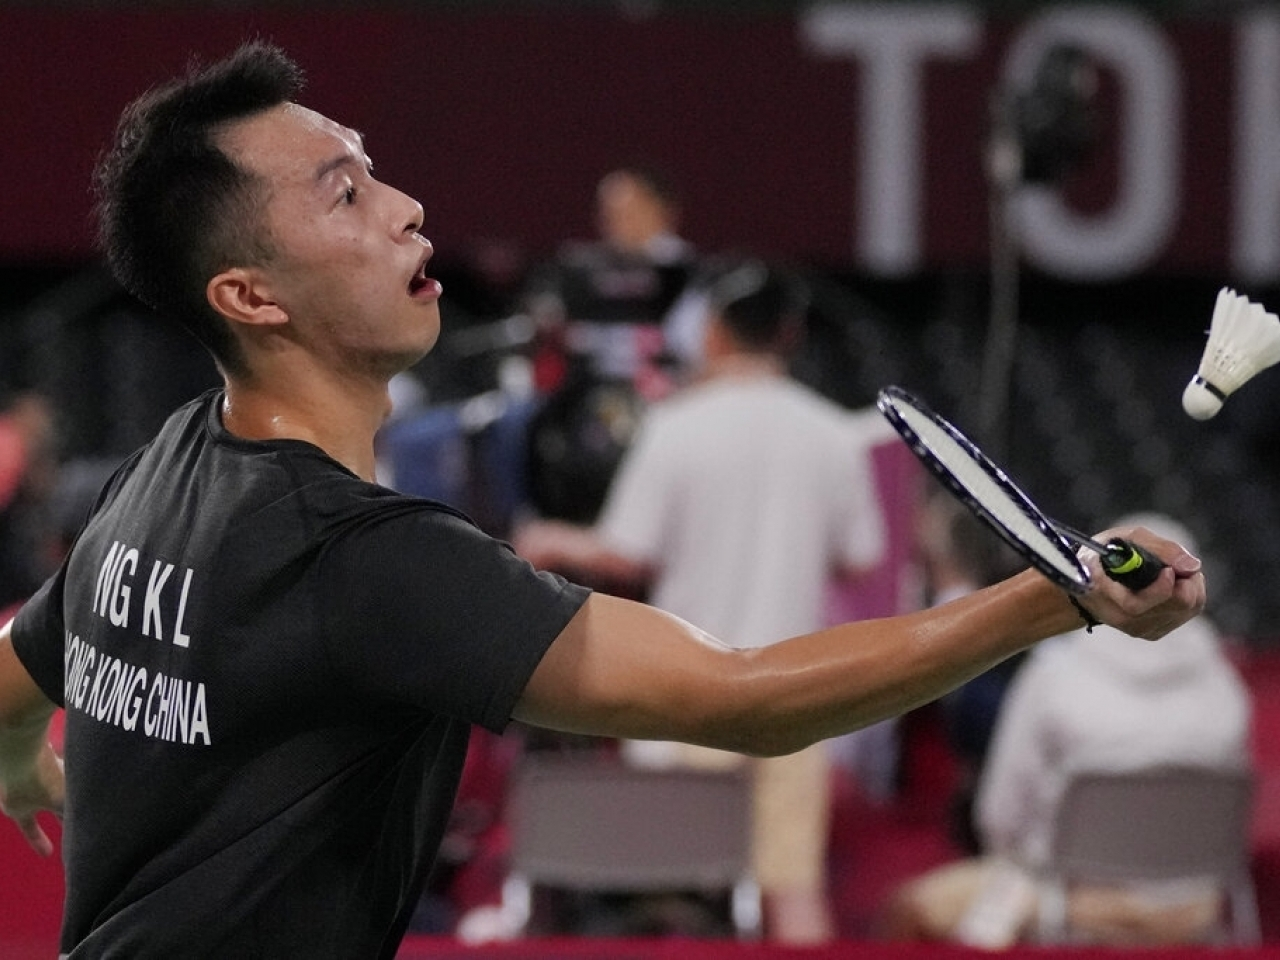 Angus Ng, who was defeated by a much lower-ranked player on Wednesday, said it would be wrong to say the controversy had not affected him. File photo: AP